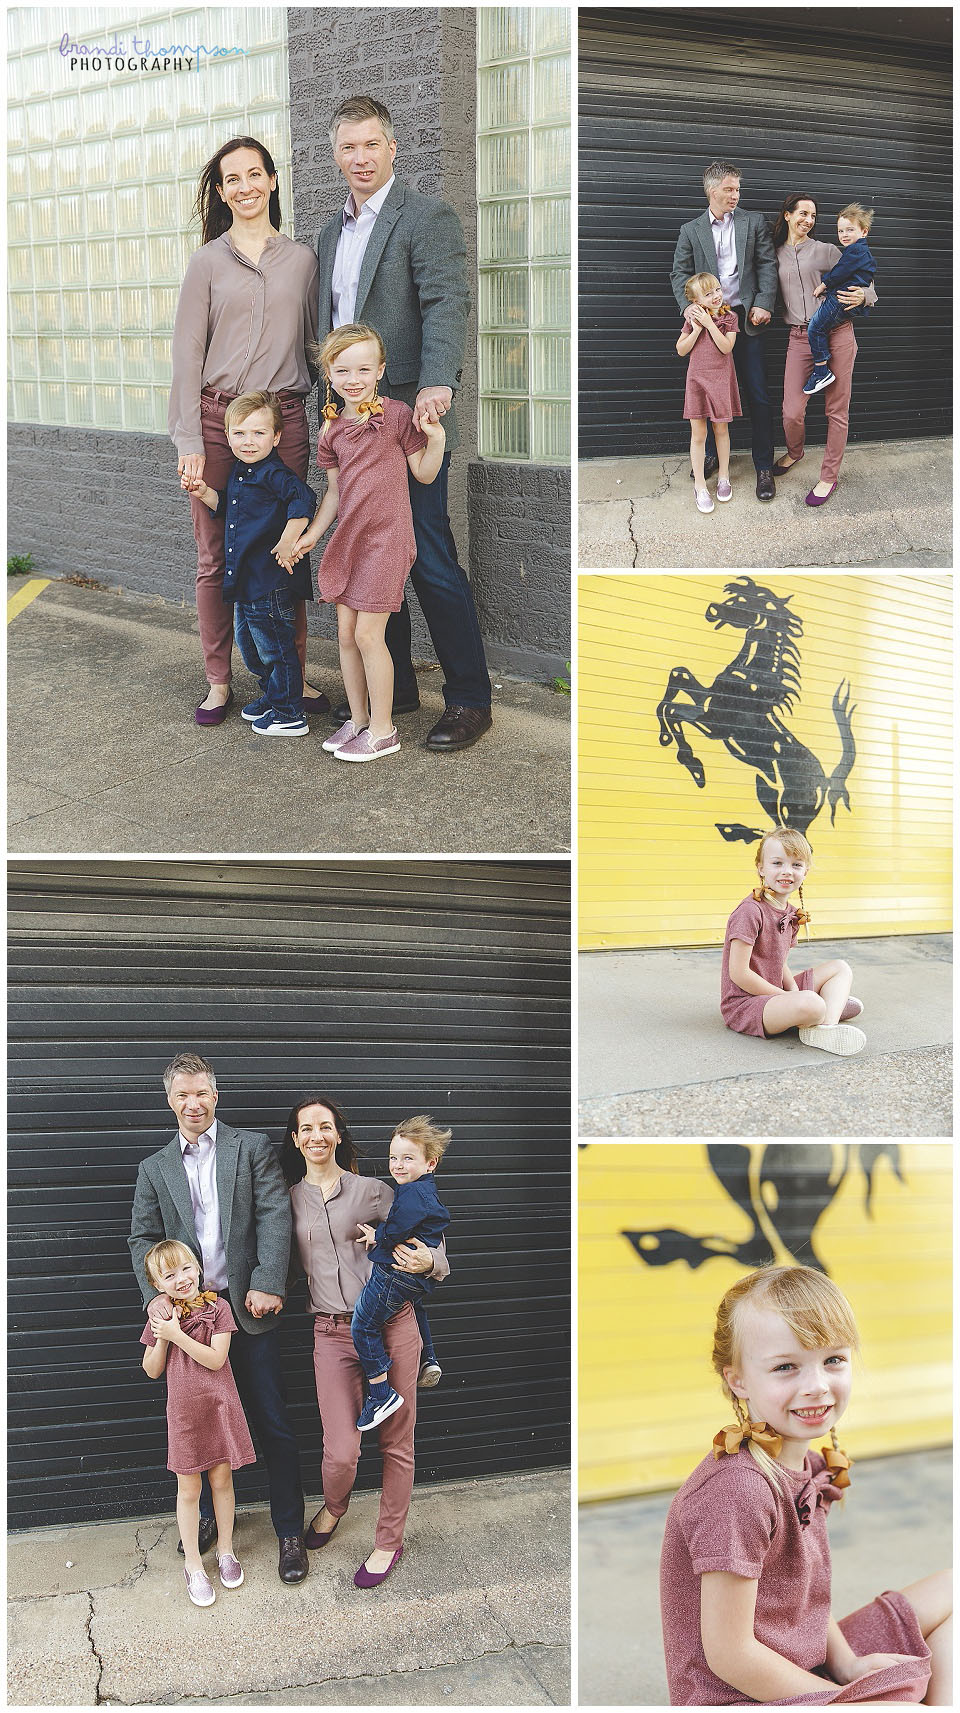 urban outdoor family session in deep ellum tx, with dad, mom, big sister and little brother